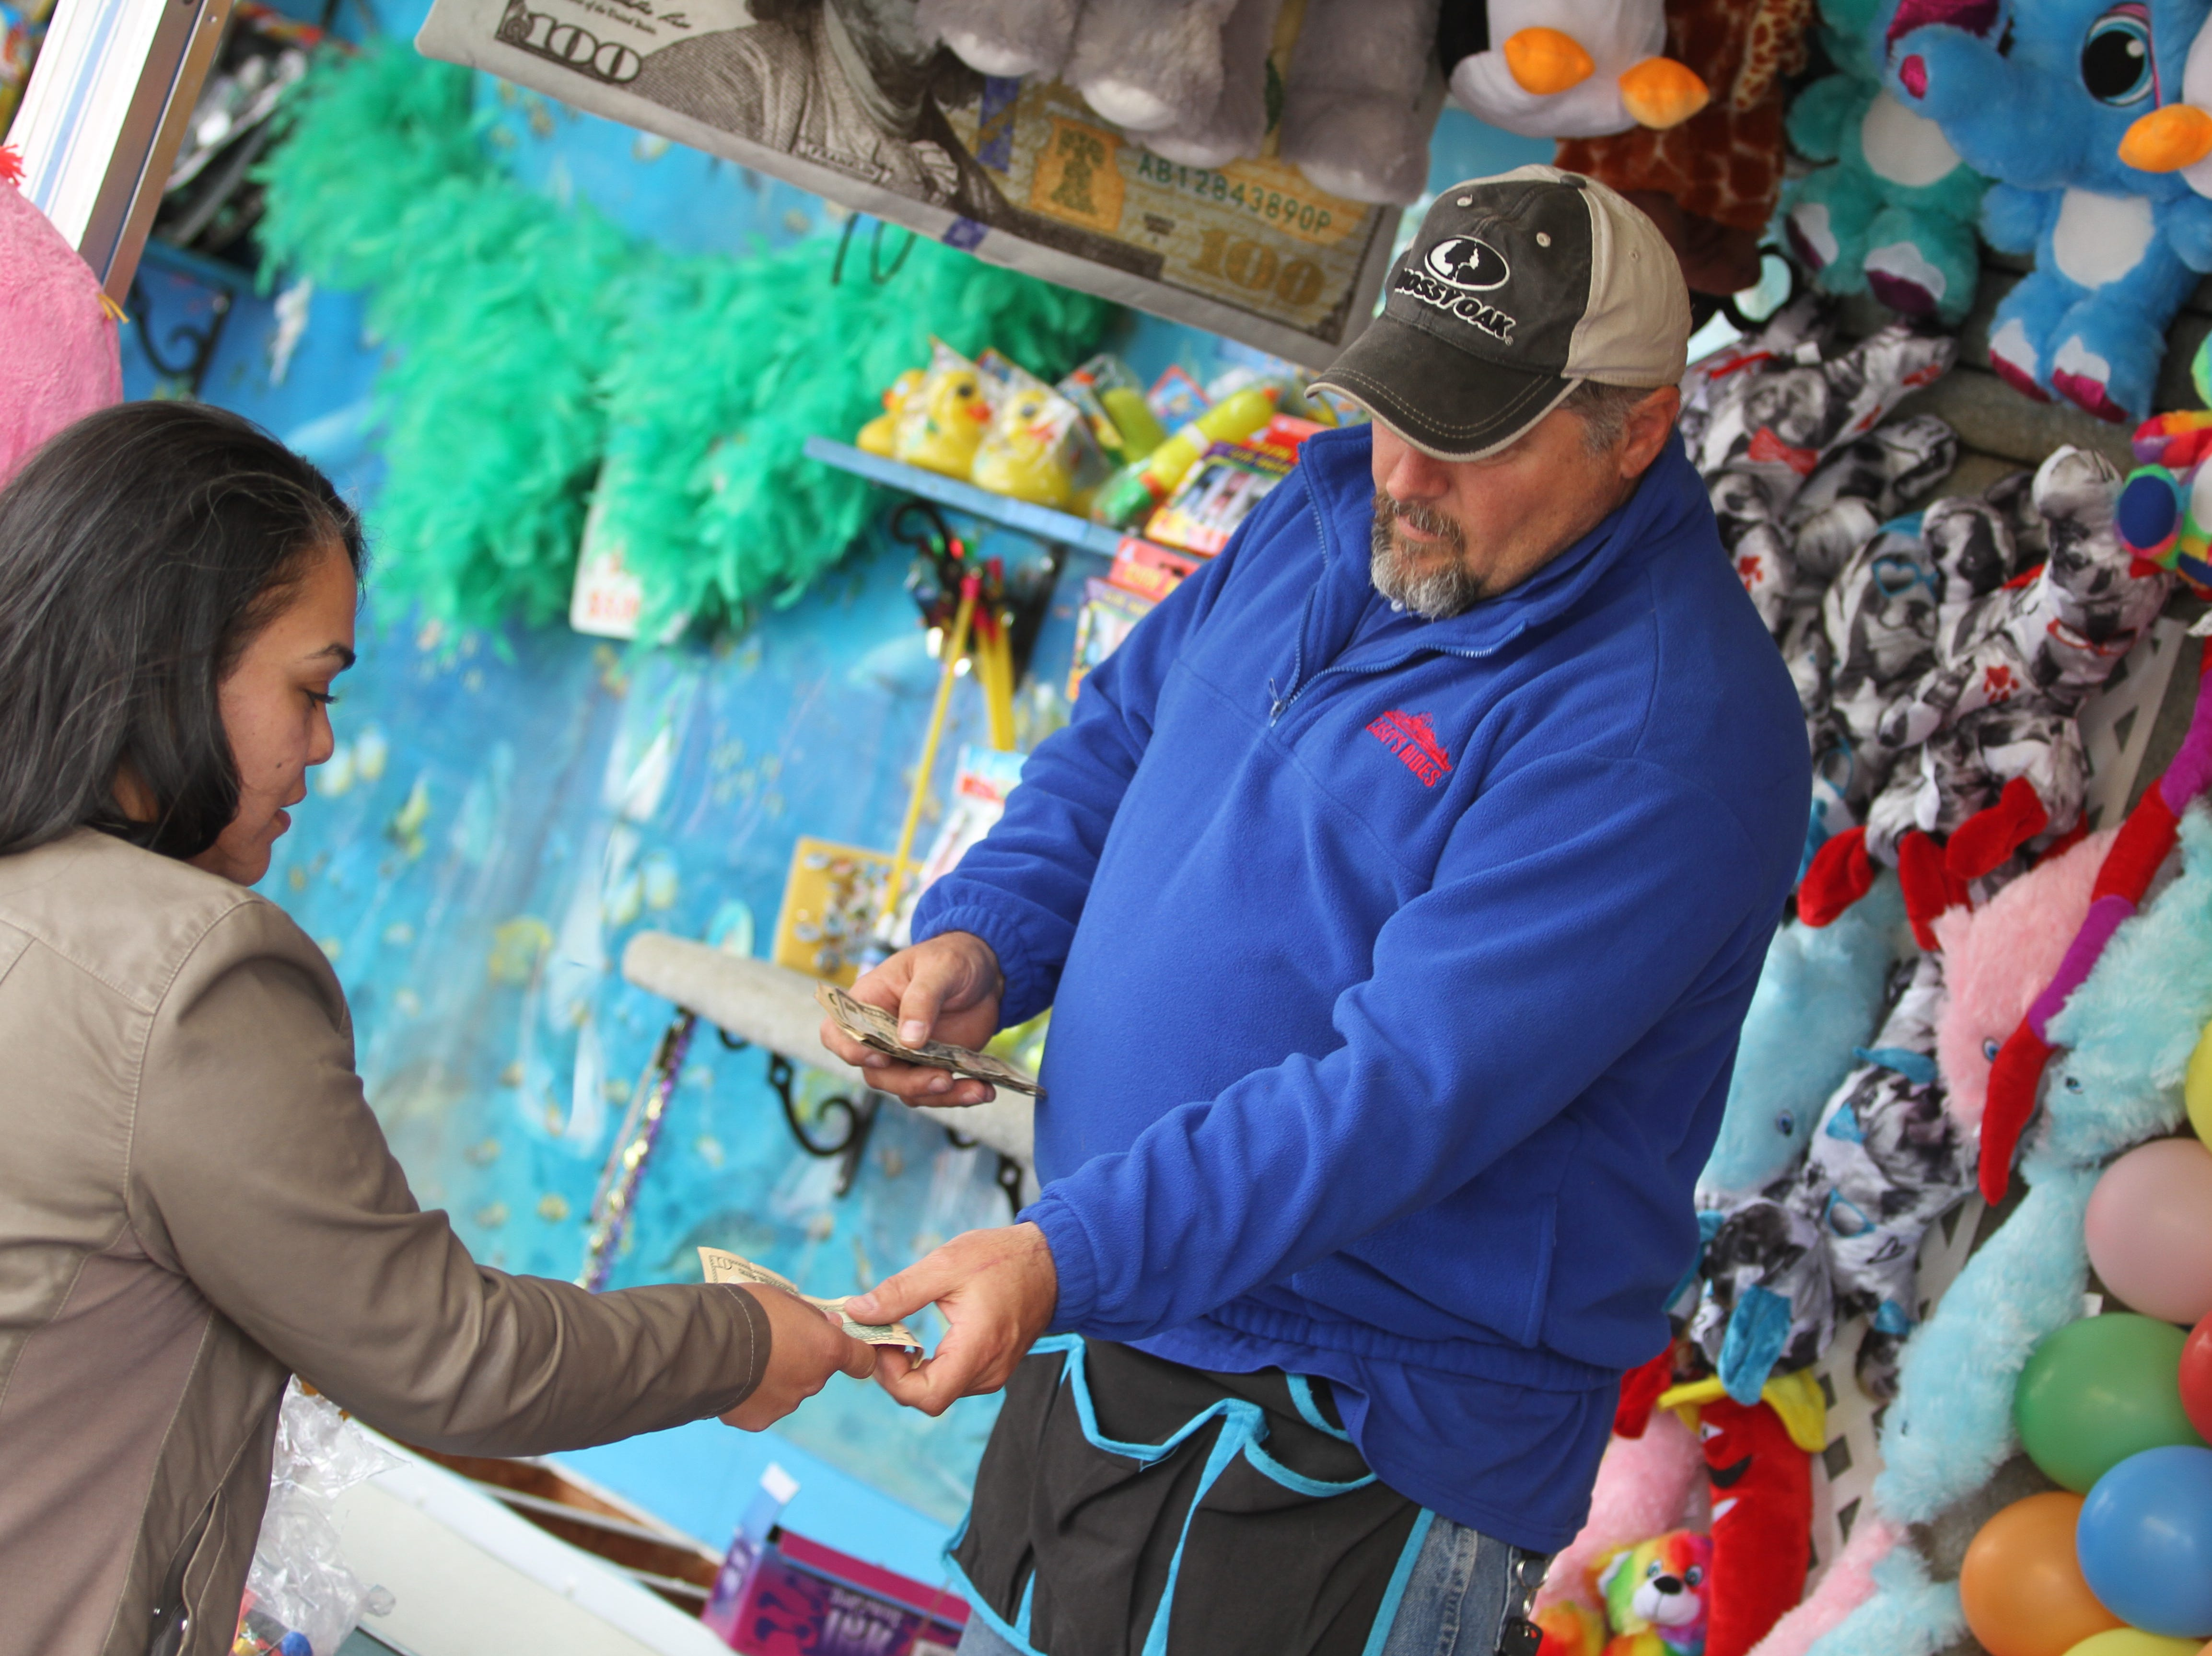 Governor's Square Mall hosted a Spring Carnival over the weekend of Saturday, April 20, 2019.